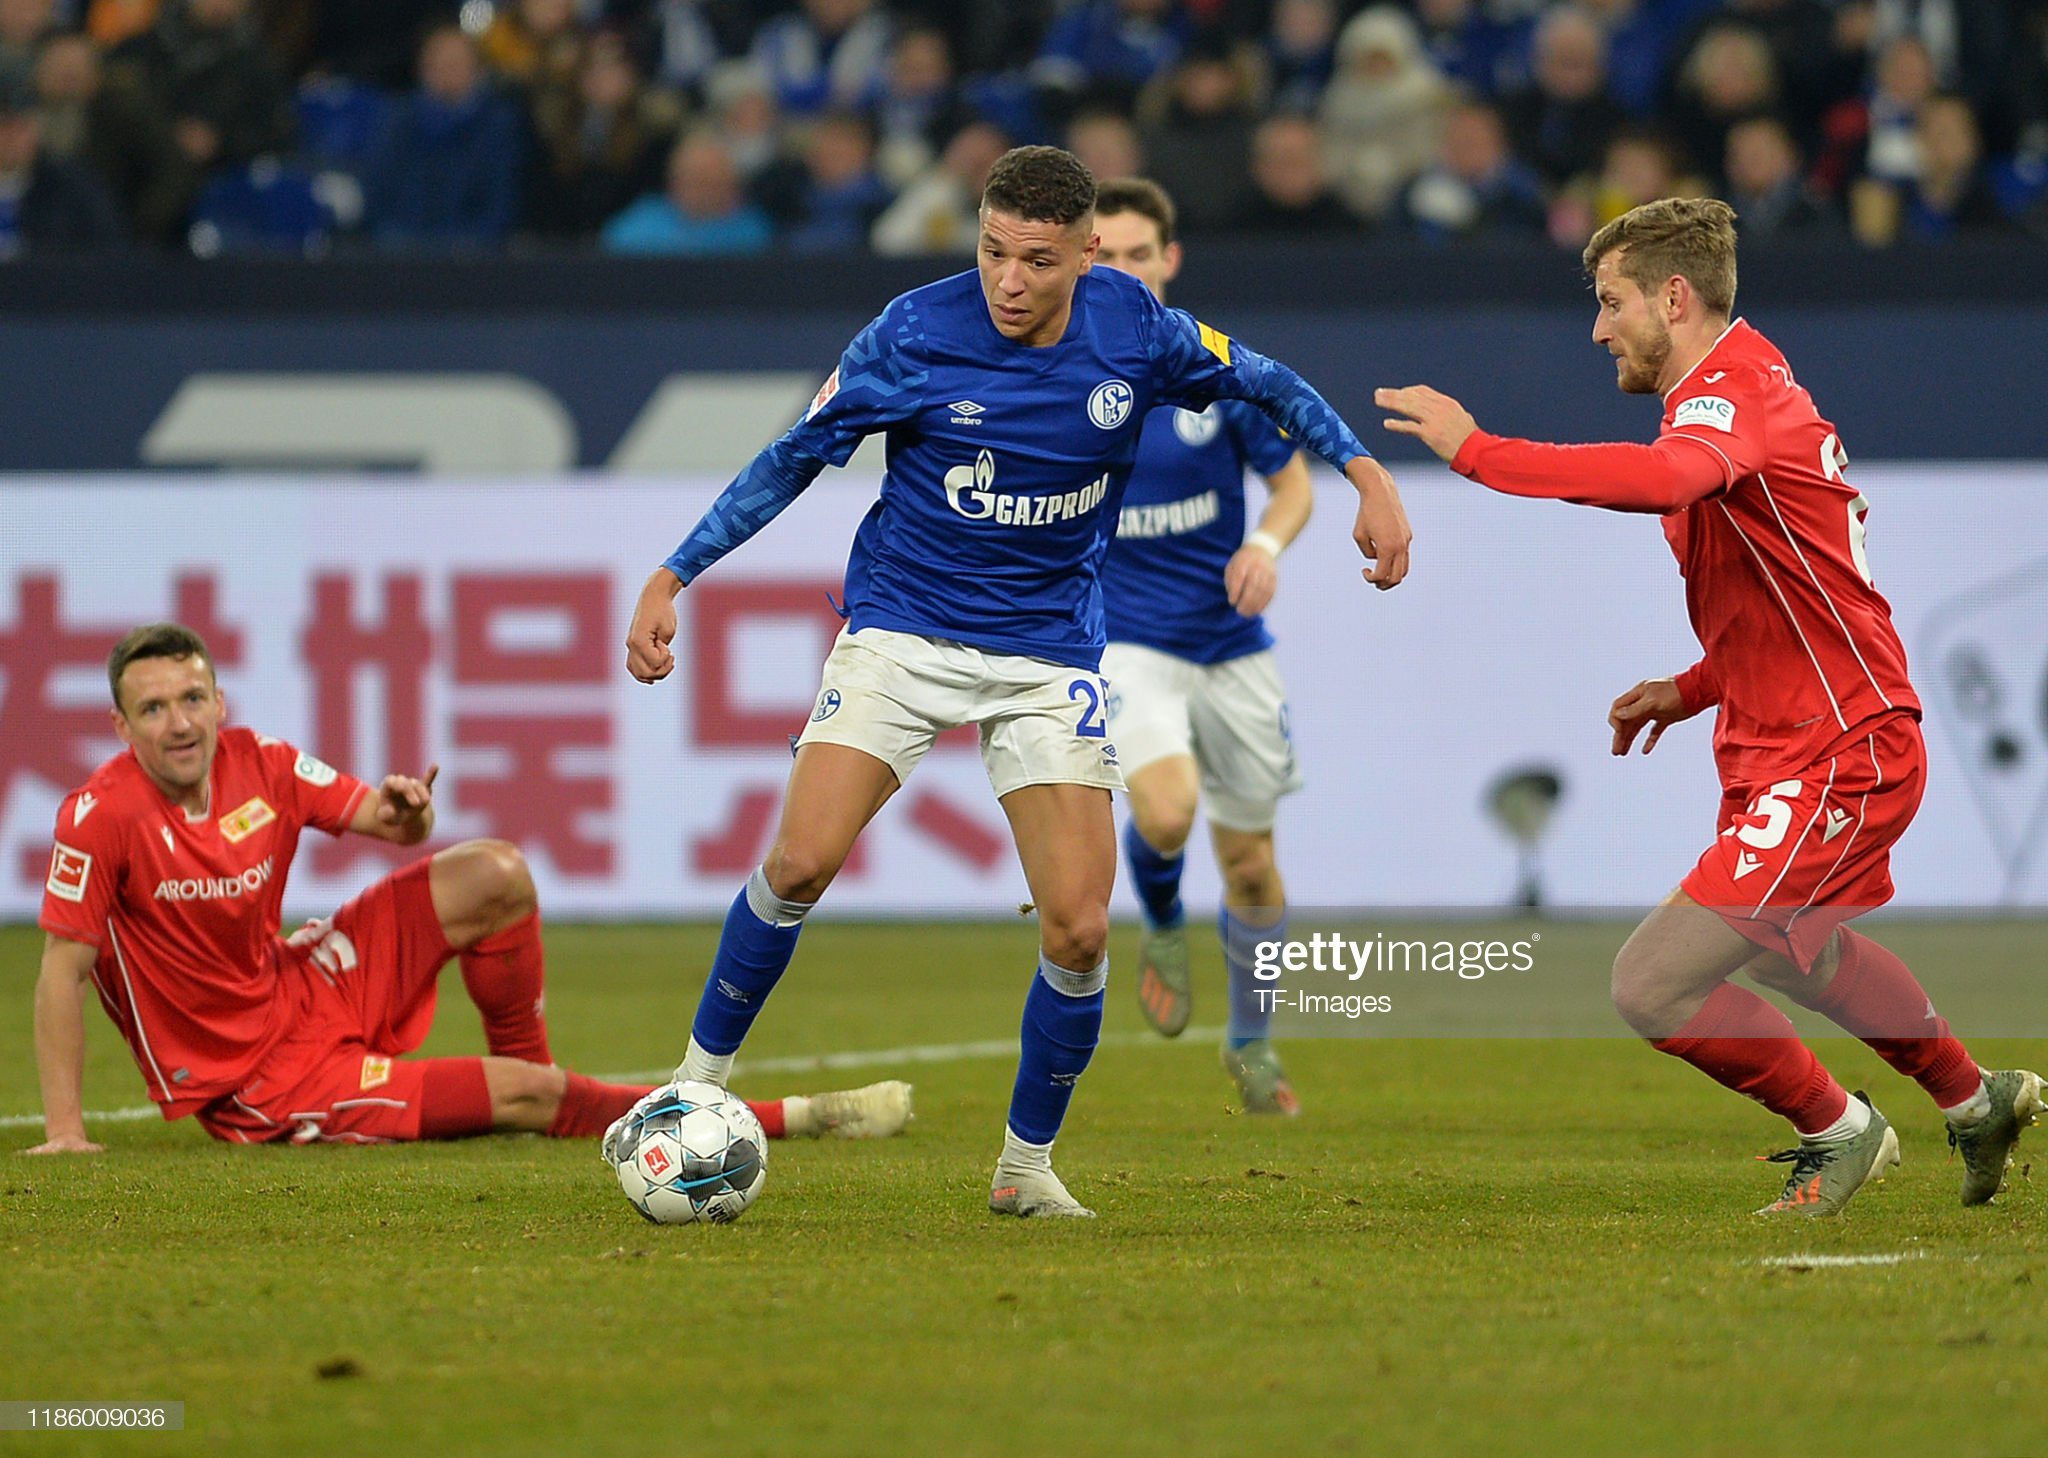 Union Berlin vs Schalke Preview, prediction and odds